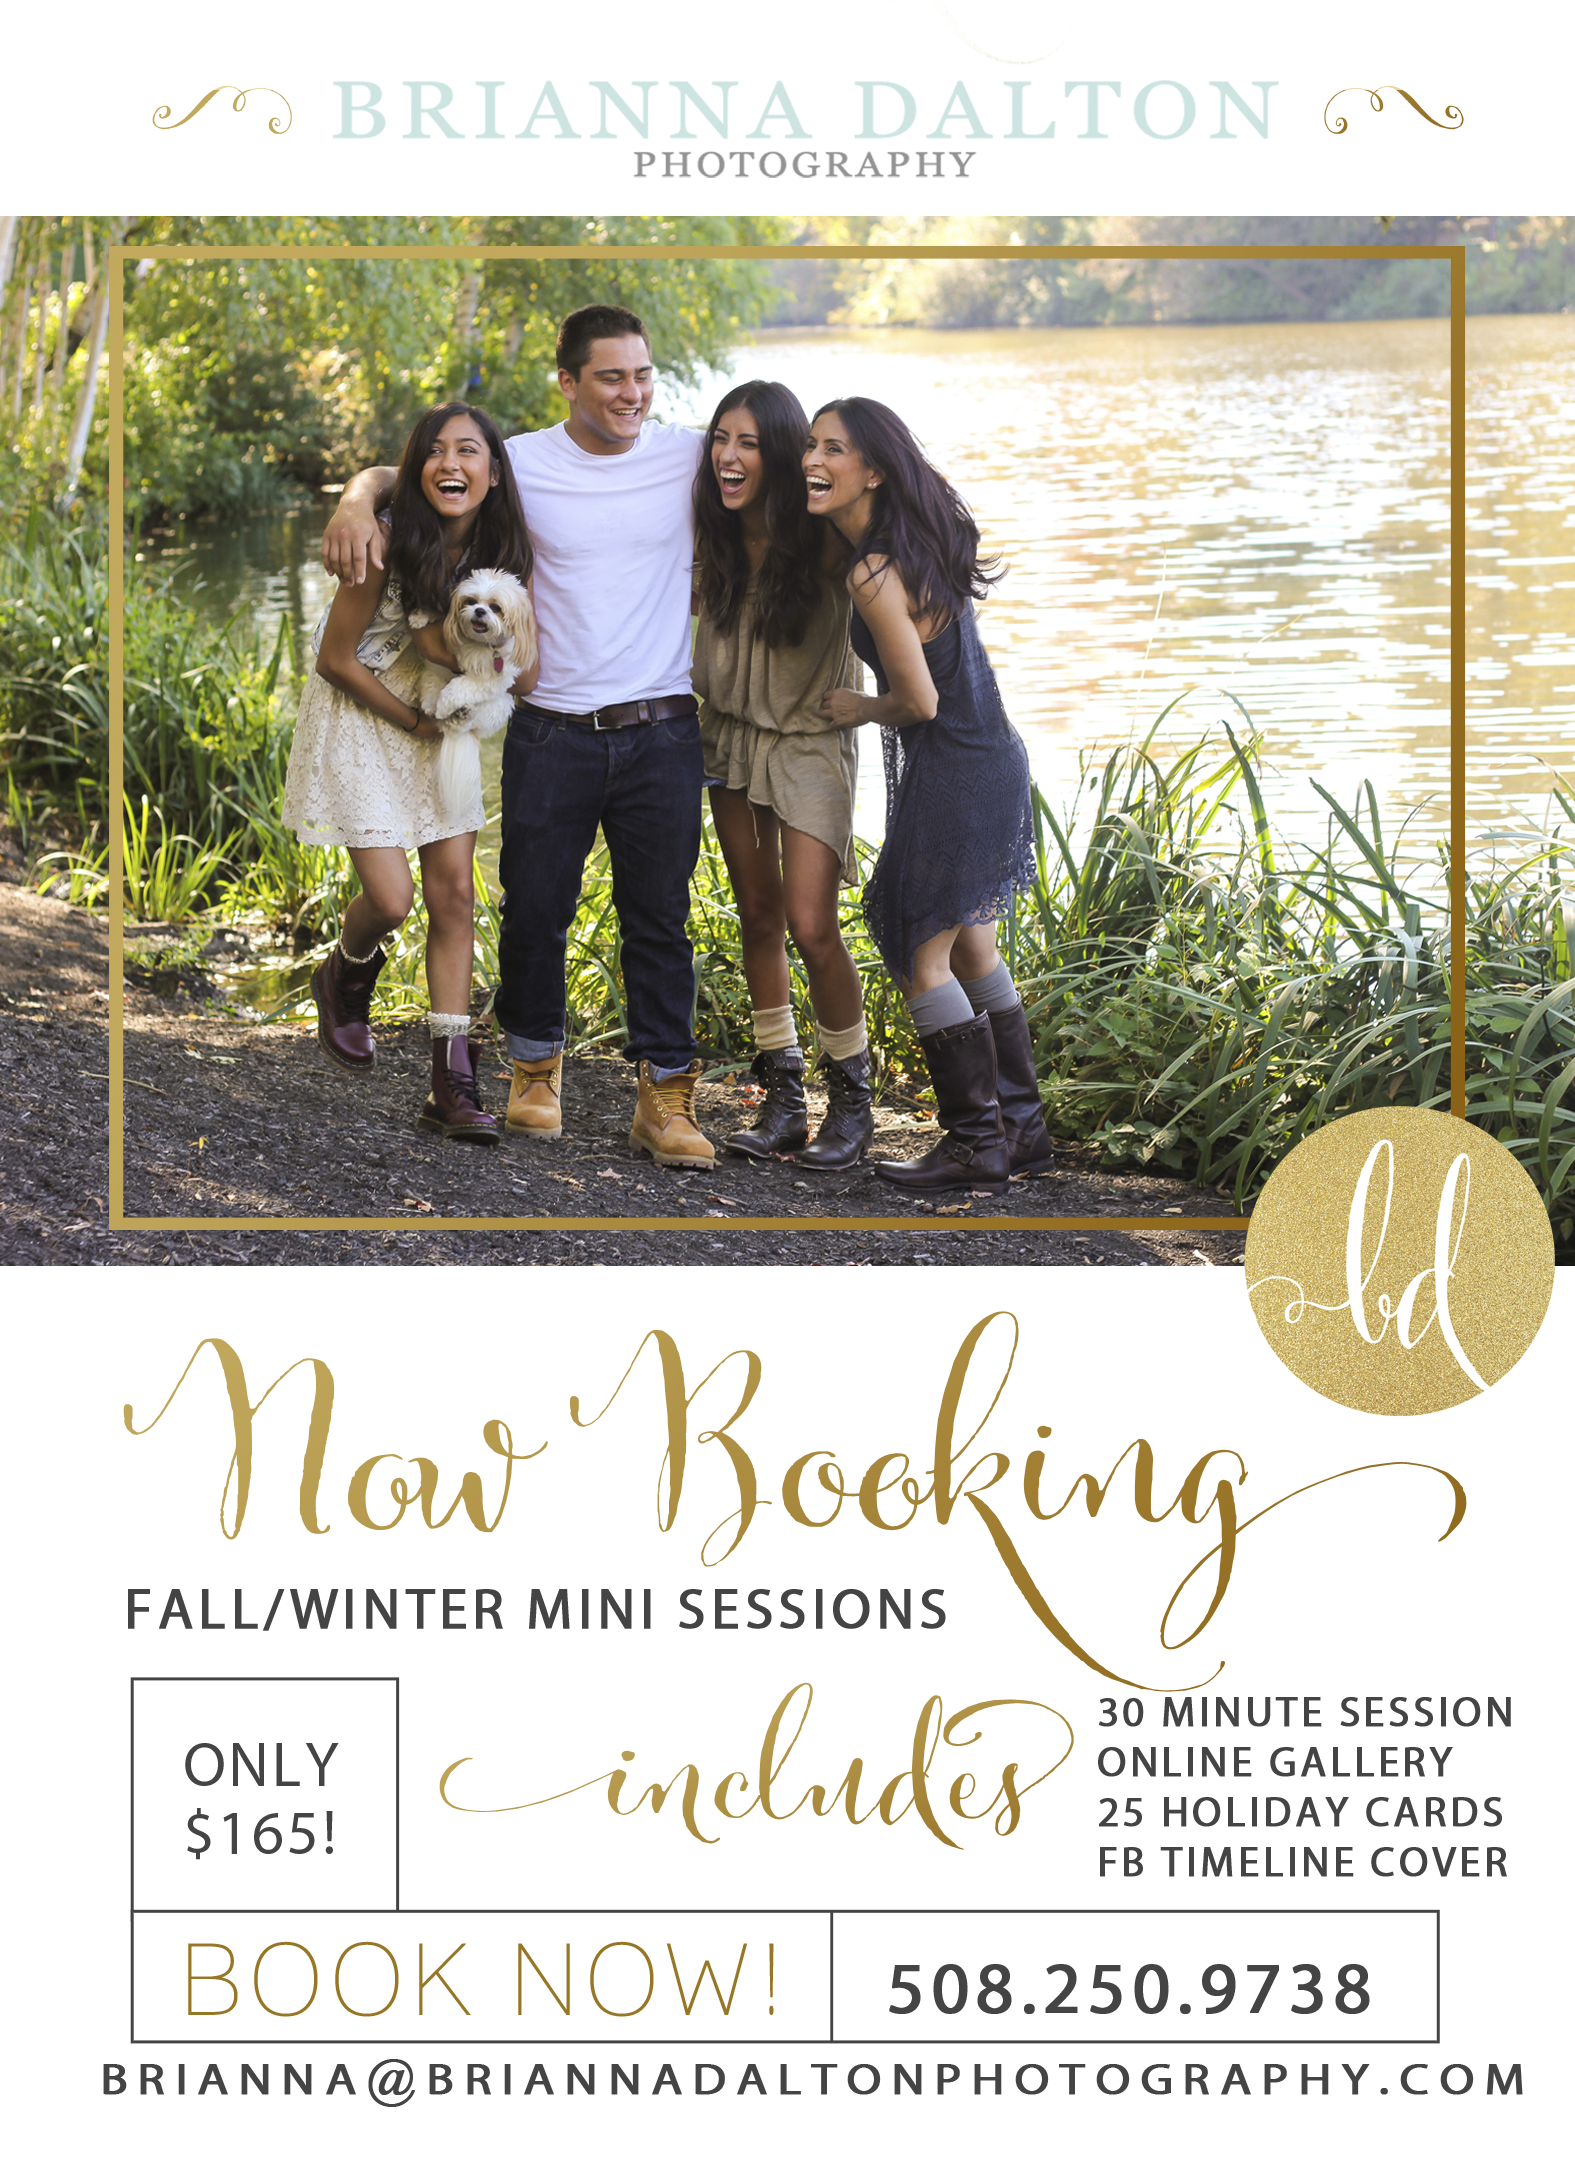 Fall Holiday Card Special  October 26th-December 8th 2014